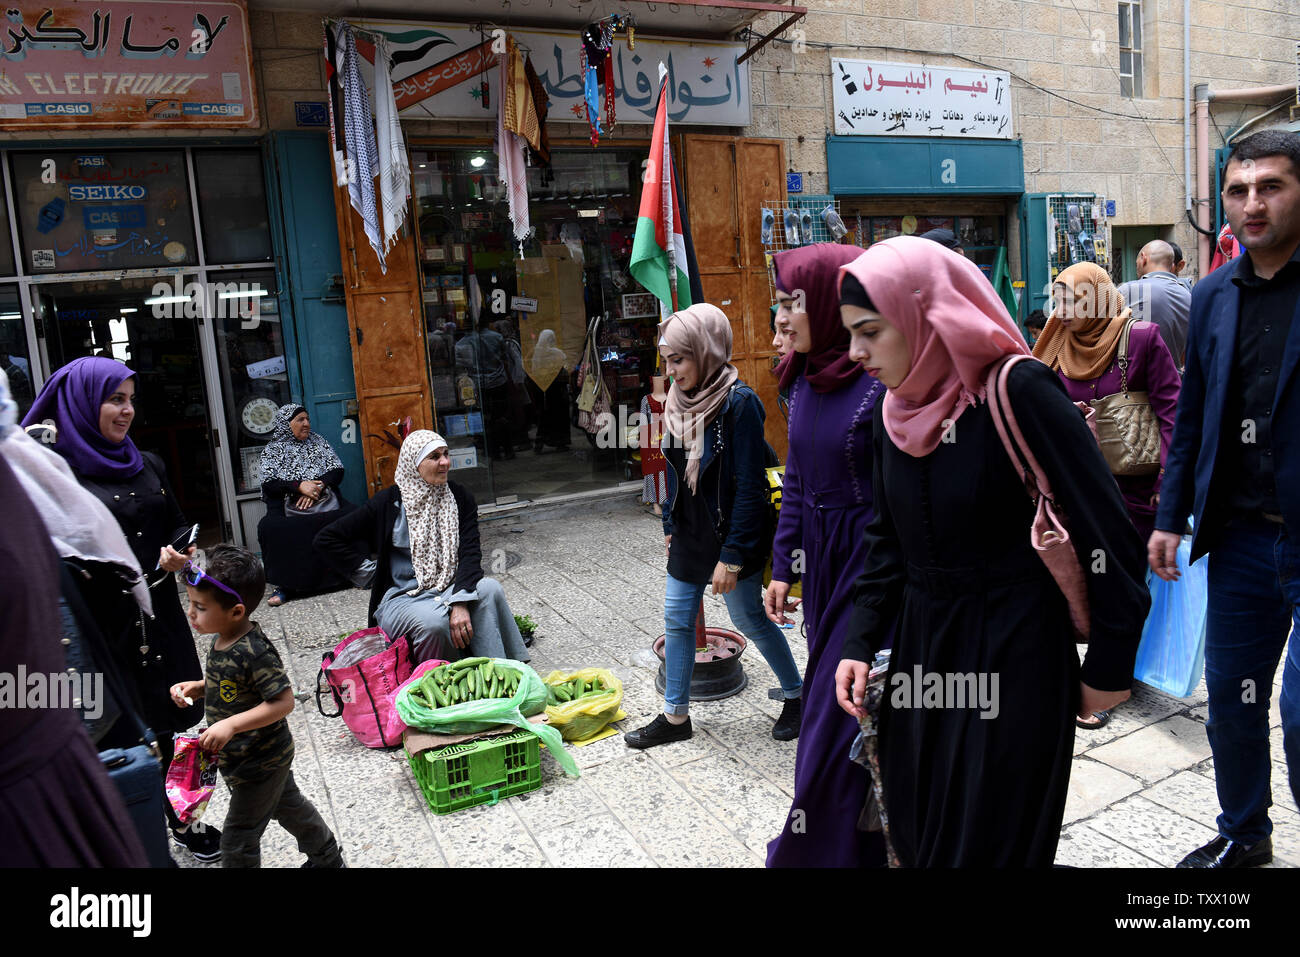 Palestinians prepare for the Islamic holiday of Eid al-Fitr, in the market in Bethlehem, West Bank, June 13, 2018. Muslims around the world will celebrate the three day holiday of  Eid al-Fitr ,which marks the end of the Muslim holy month of fasting Ramadan.  Photo by Debbie Hill/UPI - Stock Image